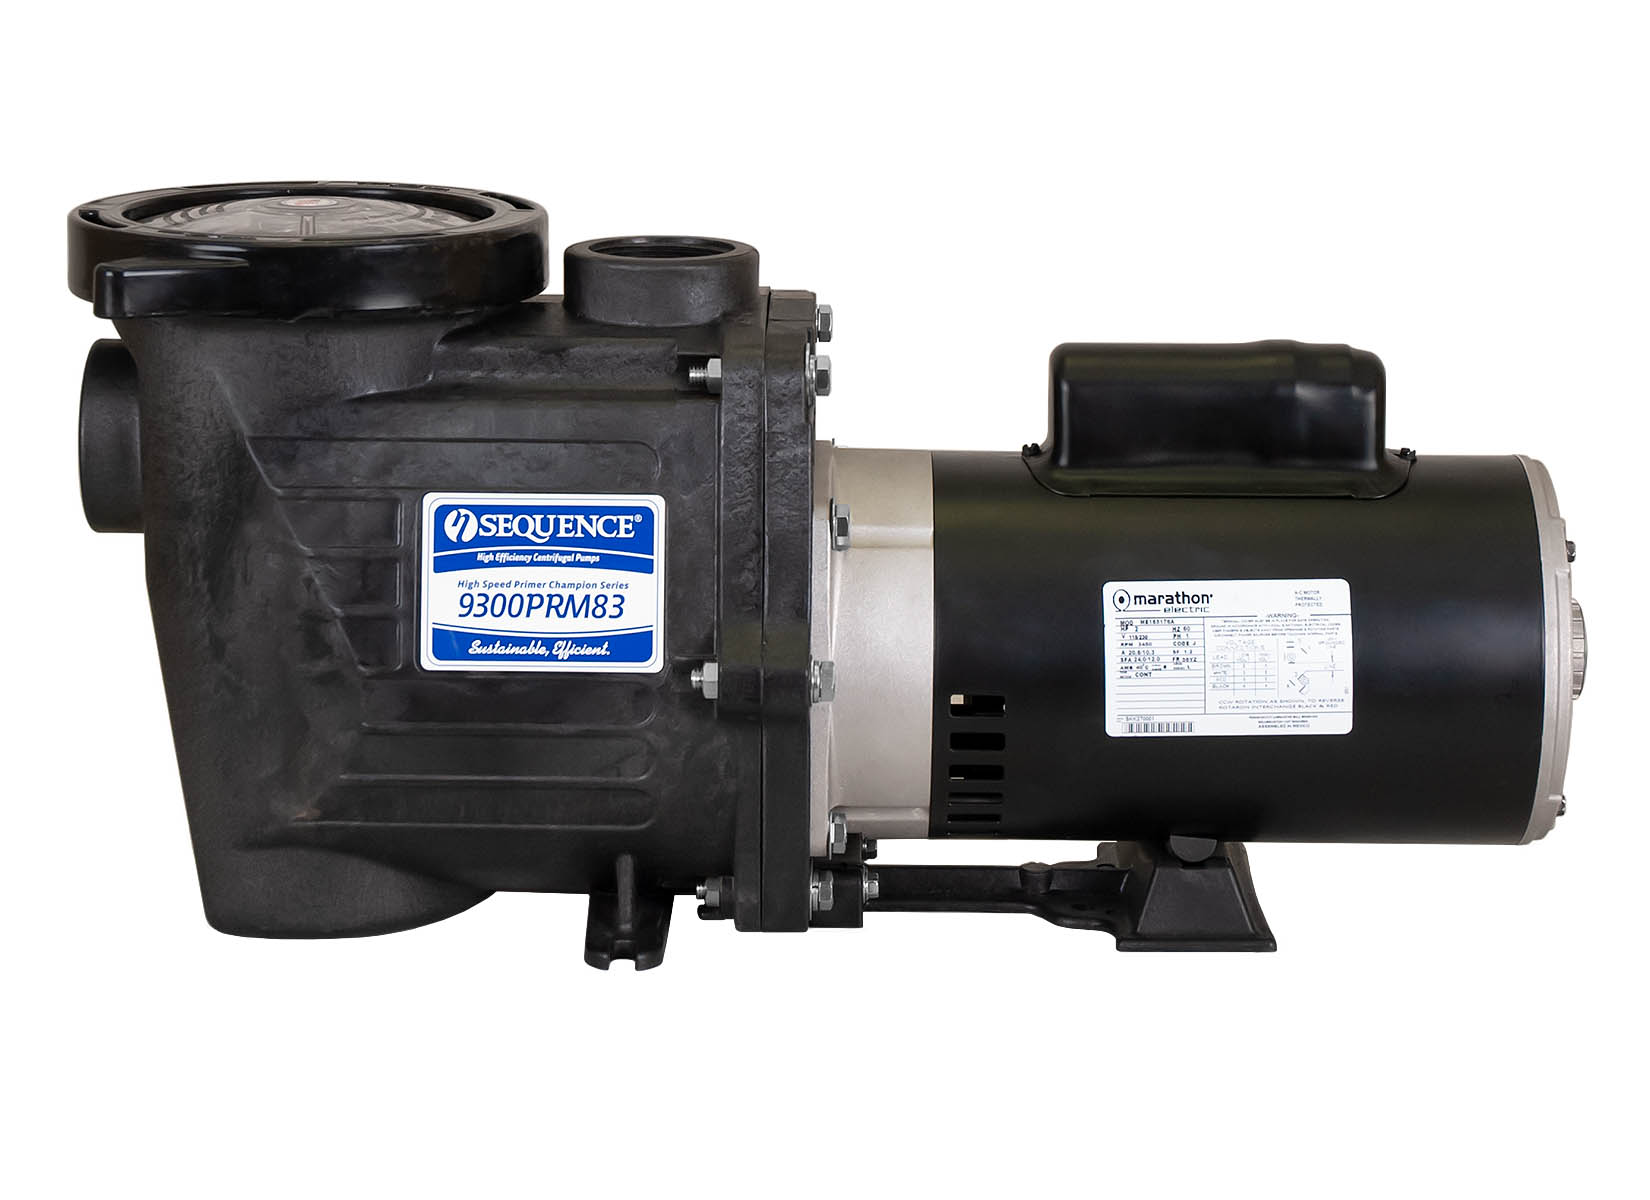 Sequence Primer Power Pump with black Marathon Motor right side view